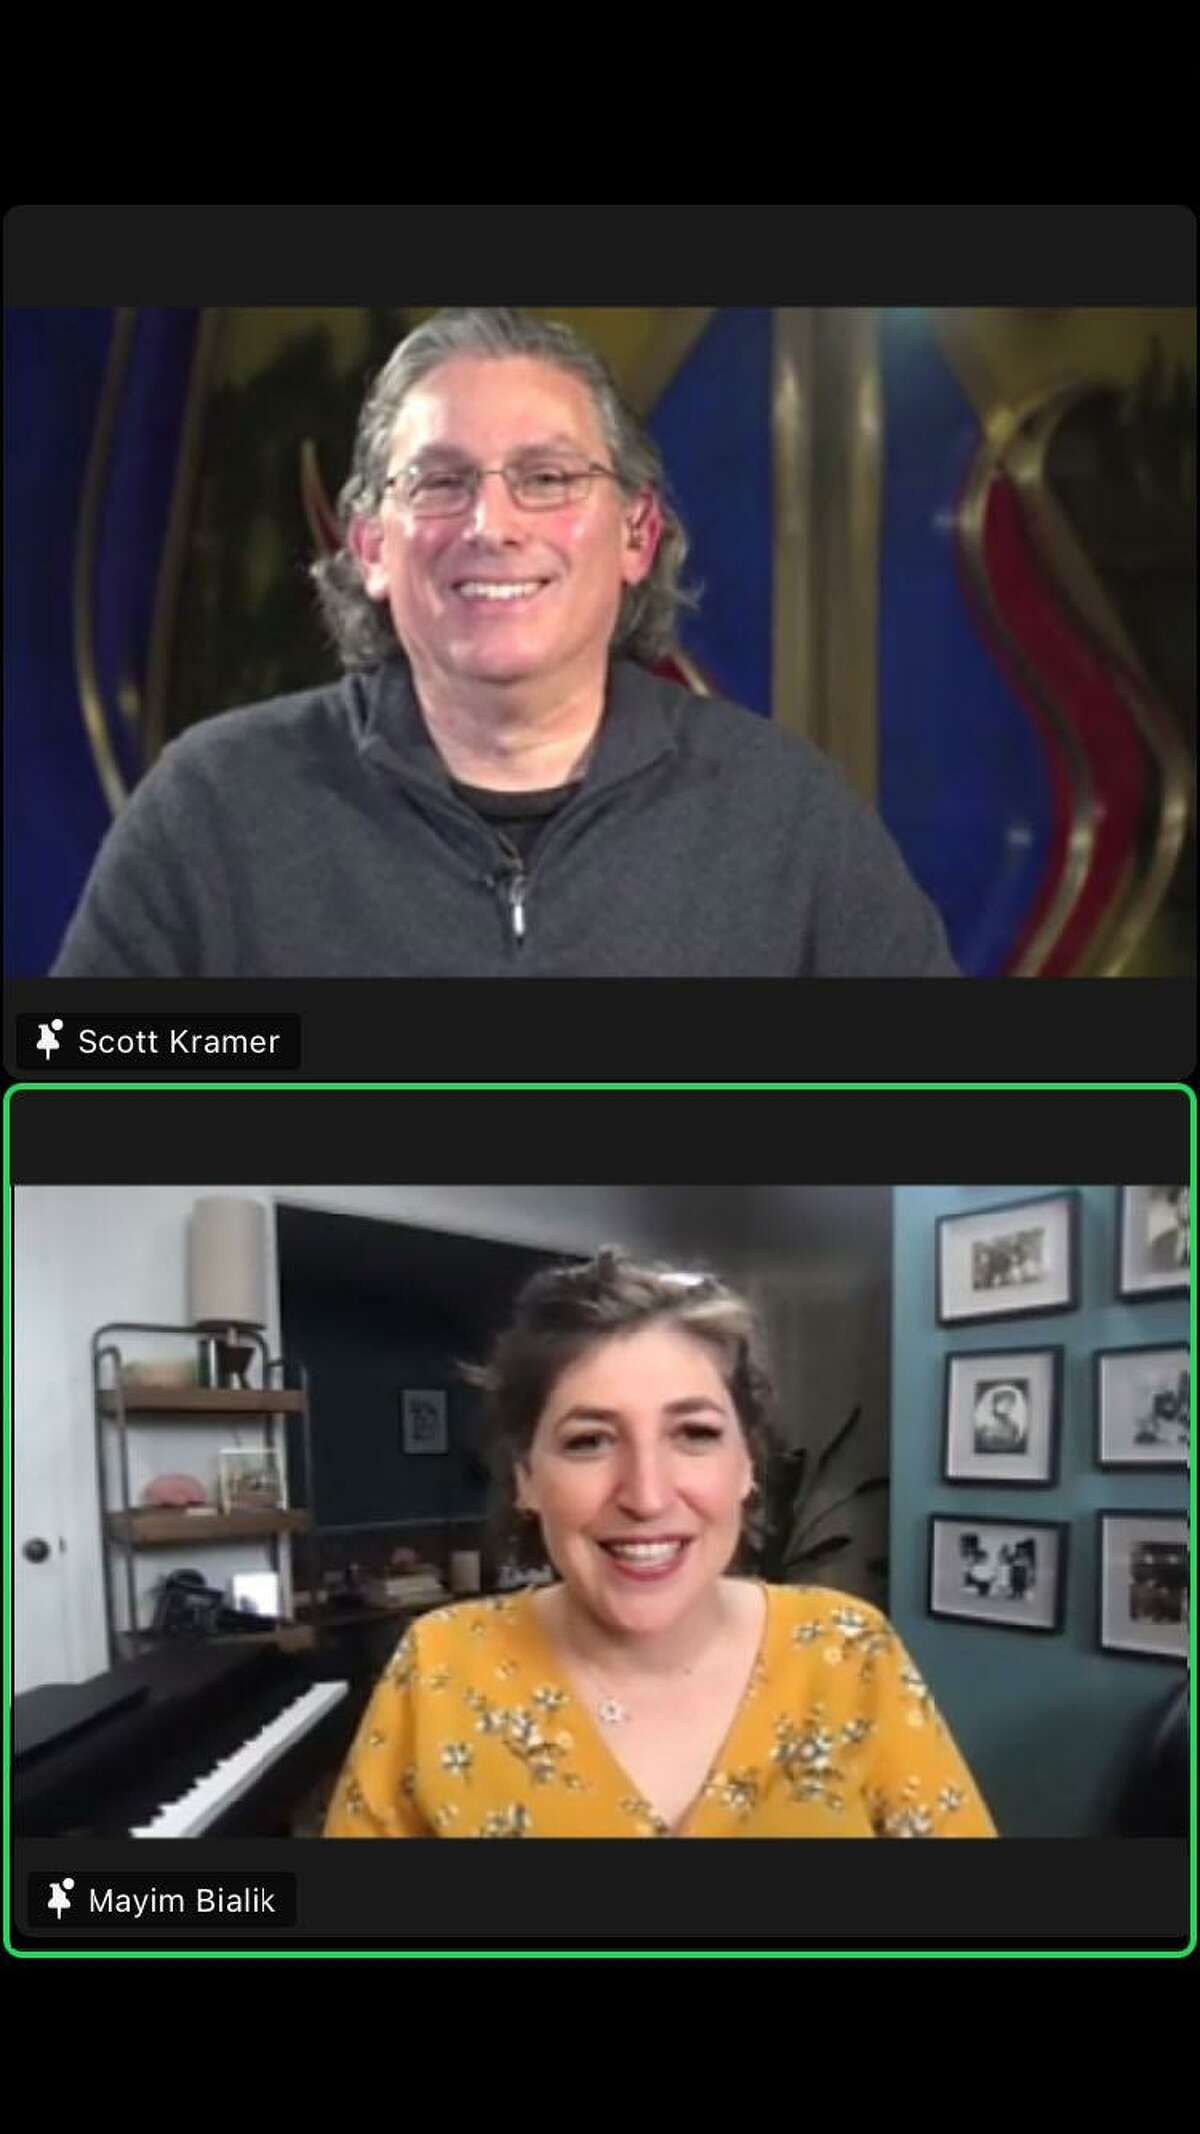 The Zoom discussion with actress Mayim Bialik is moderated by Temple Sholom congregant and VP of Programming Scott Kramer, as she answered questions on all topics for nearly 200 participants.